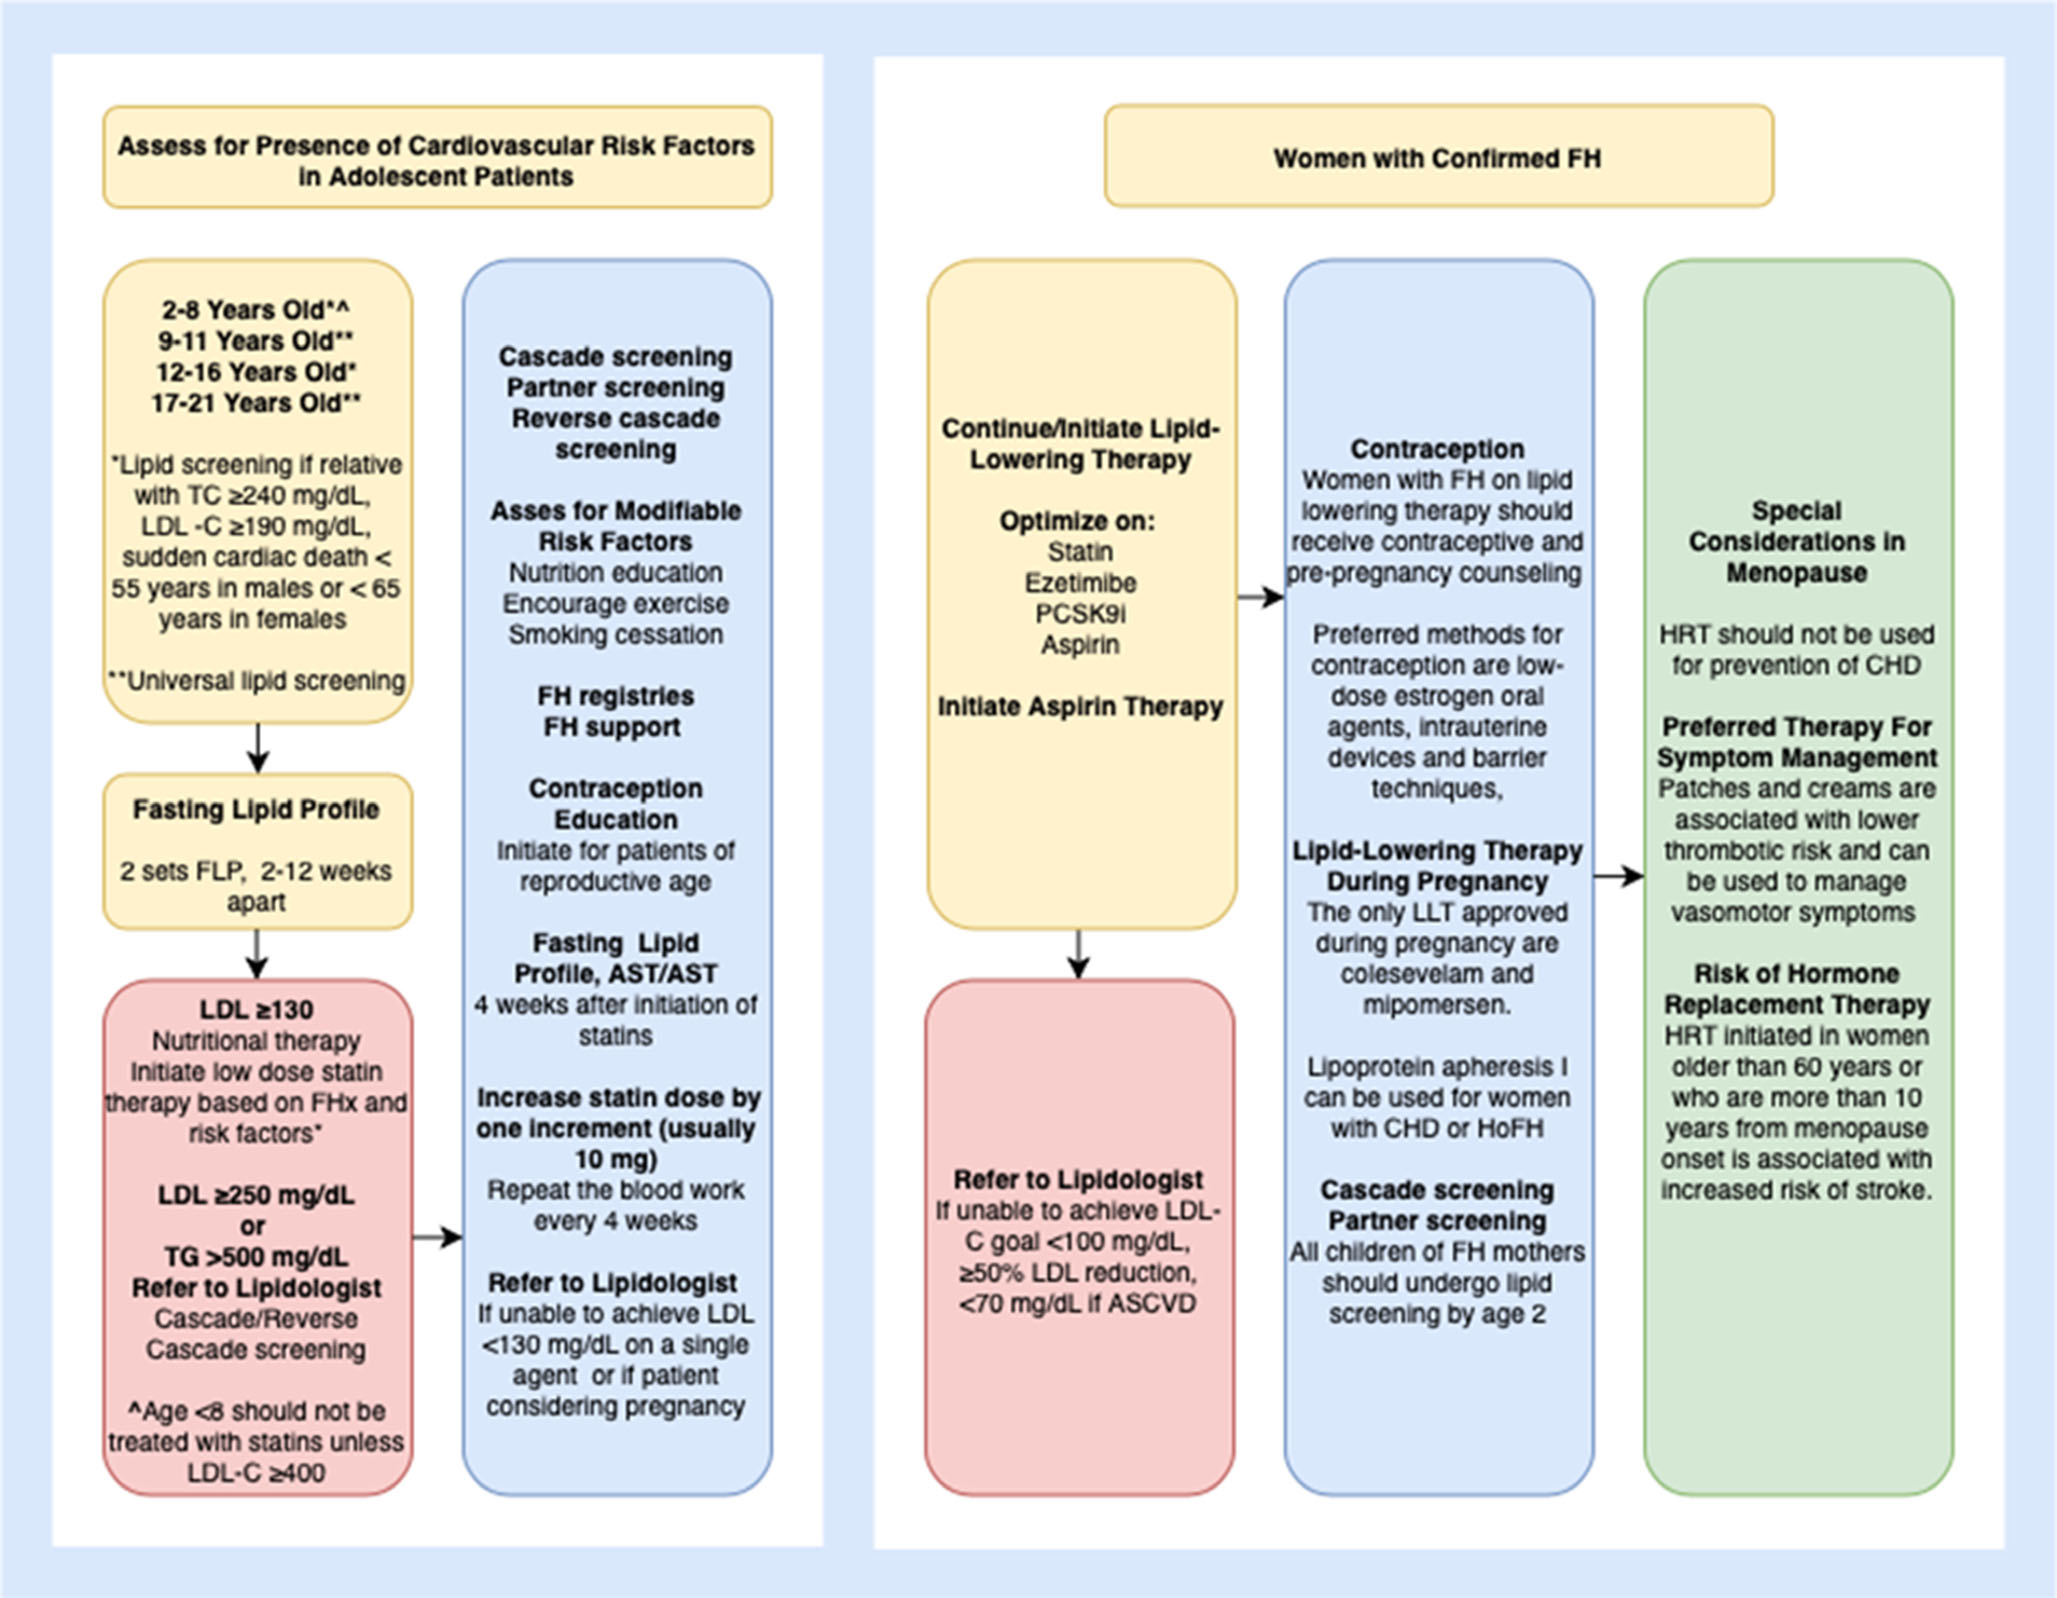 flow chart of treatment considerations for women with FH